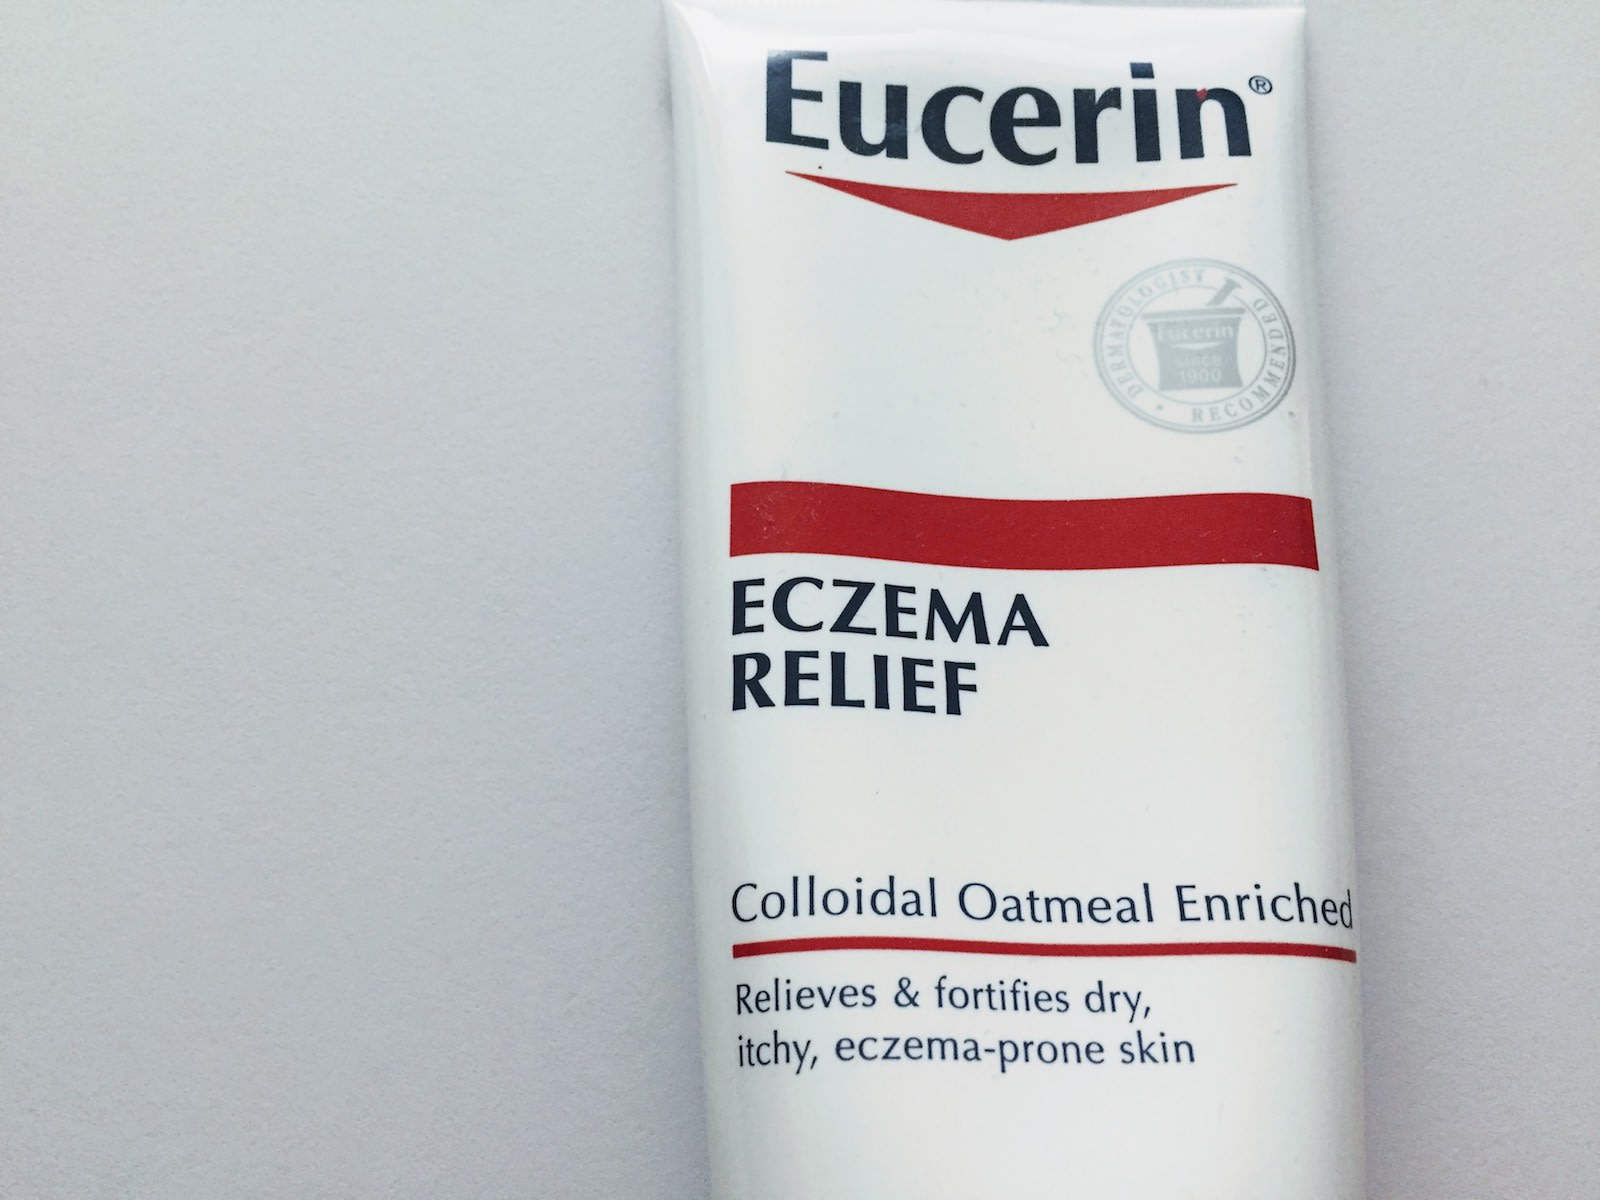 Eucerin Eczema Relief Body Creme review